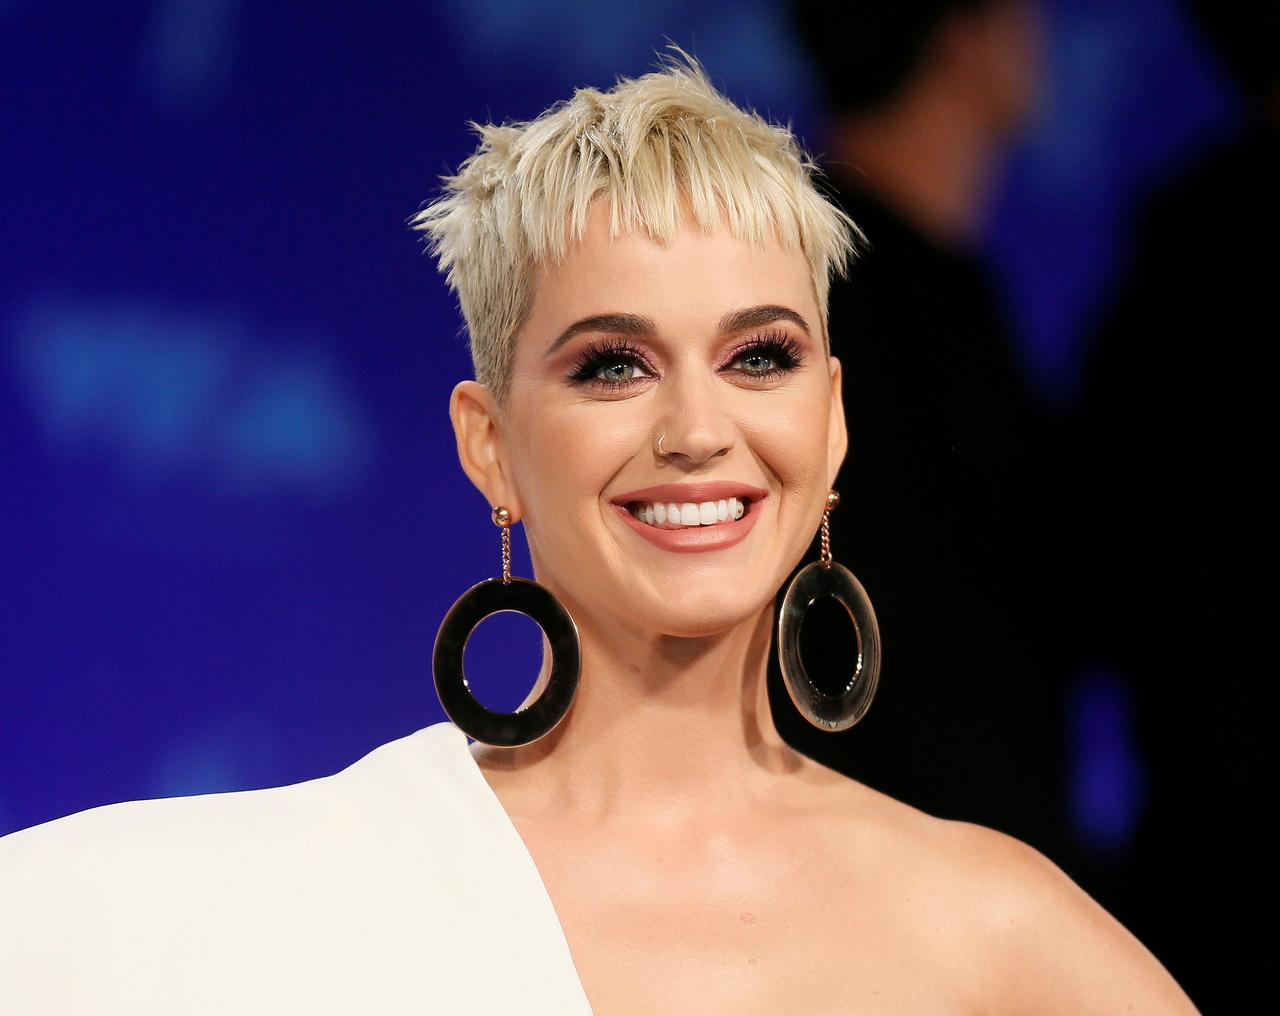 WATCH: Katy Perry Says Being Grateful and Believing That 'God is Much Bigger' Than Her Helped Her Overcome Suicidal Thoughts in 2017